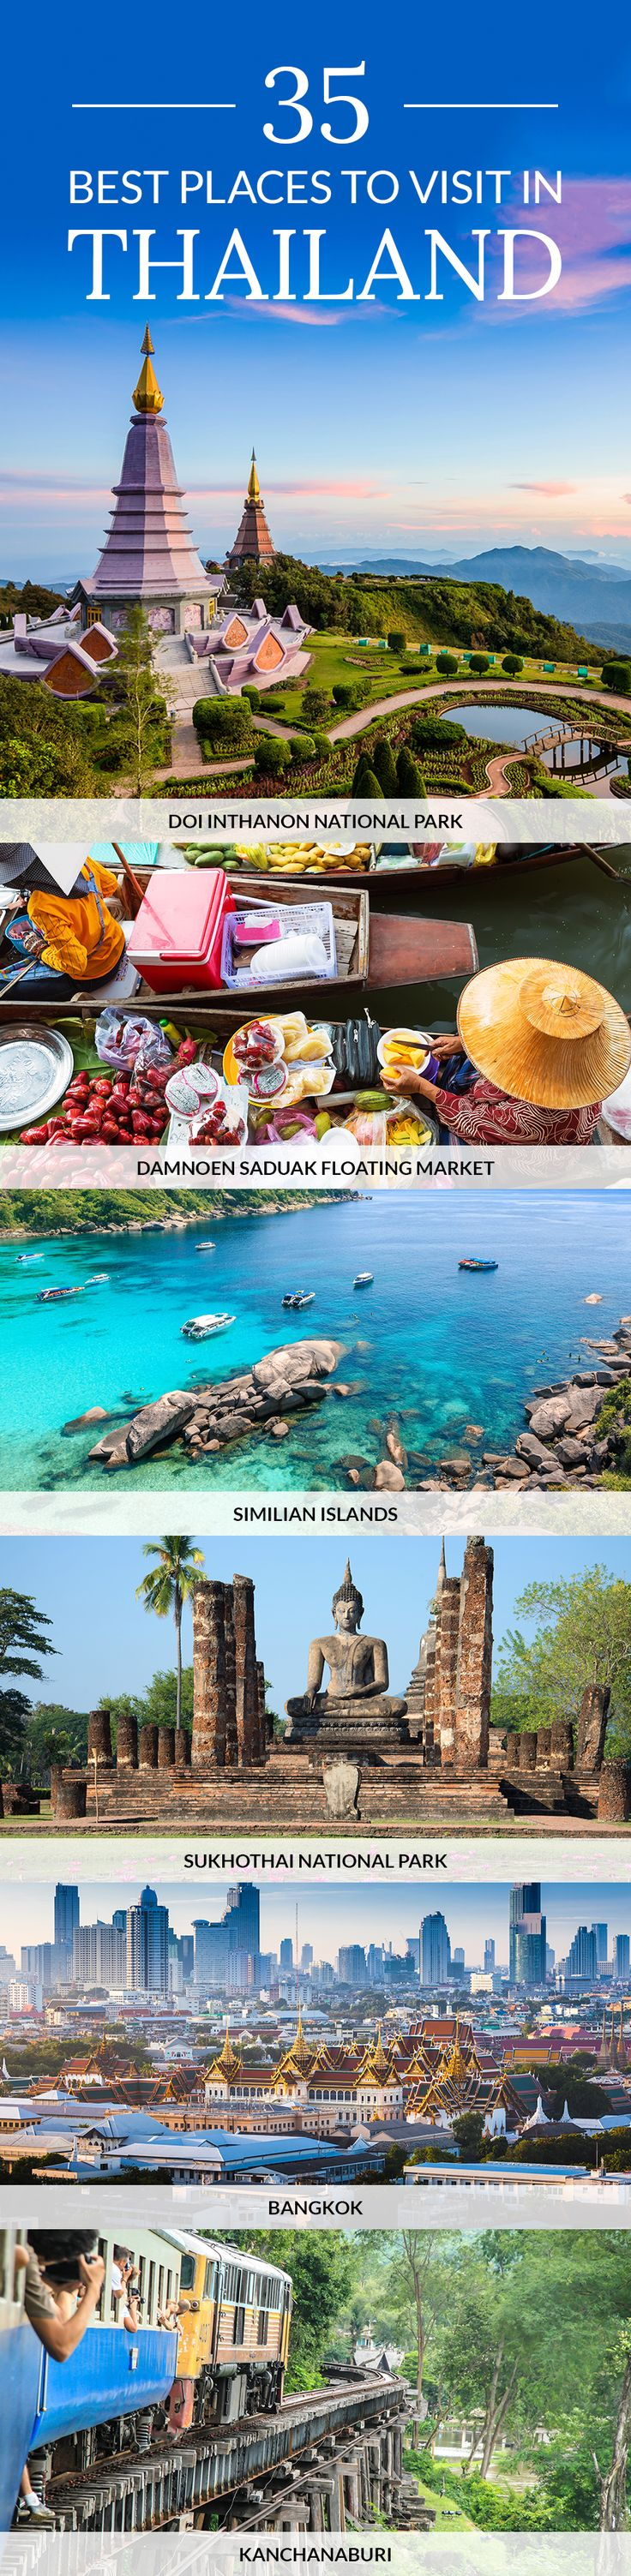 Discover the Best Places to Visit in Thailand. Find the best things to do and see in #Thailand with the help of our travel guide.